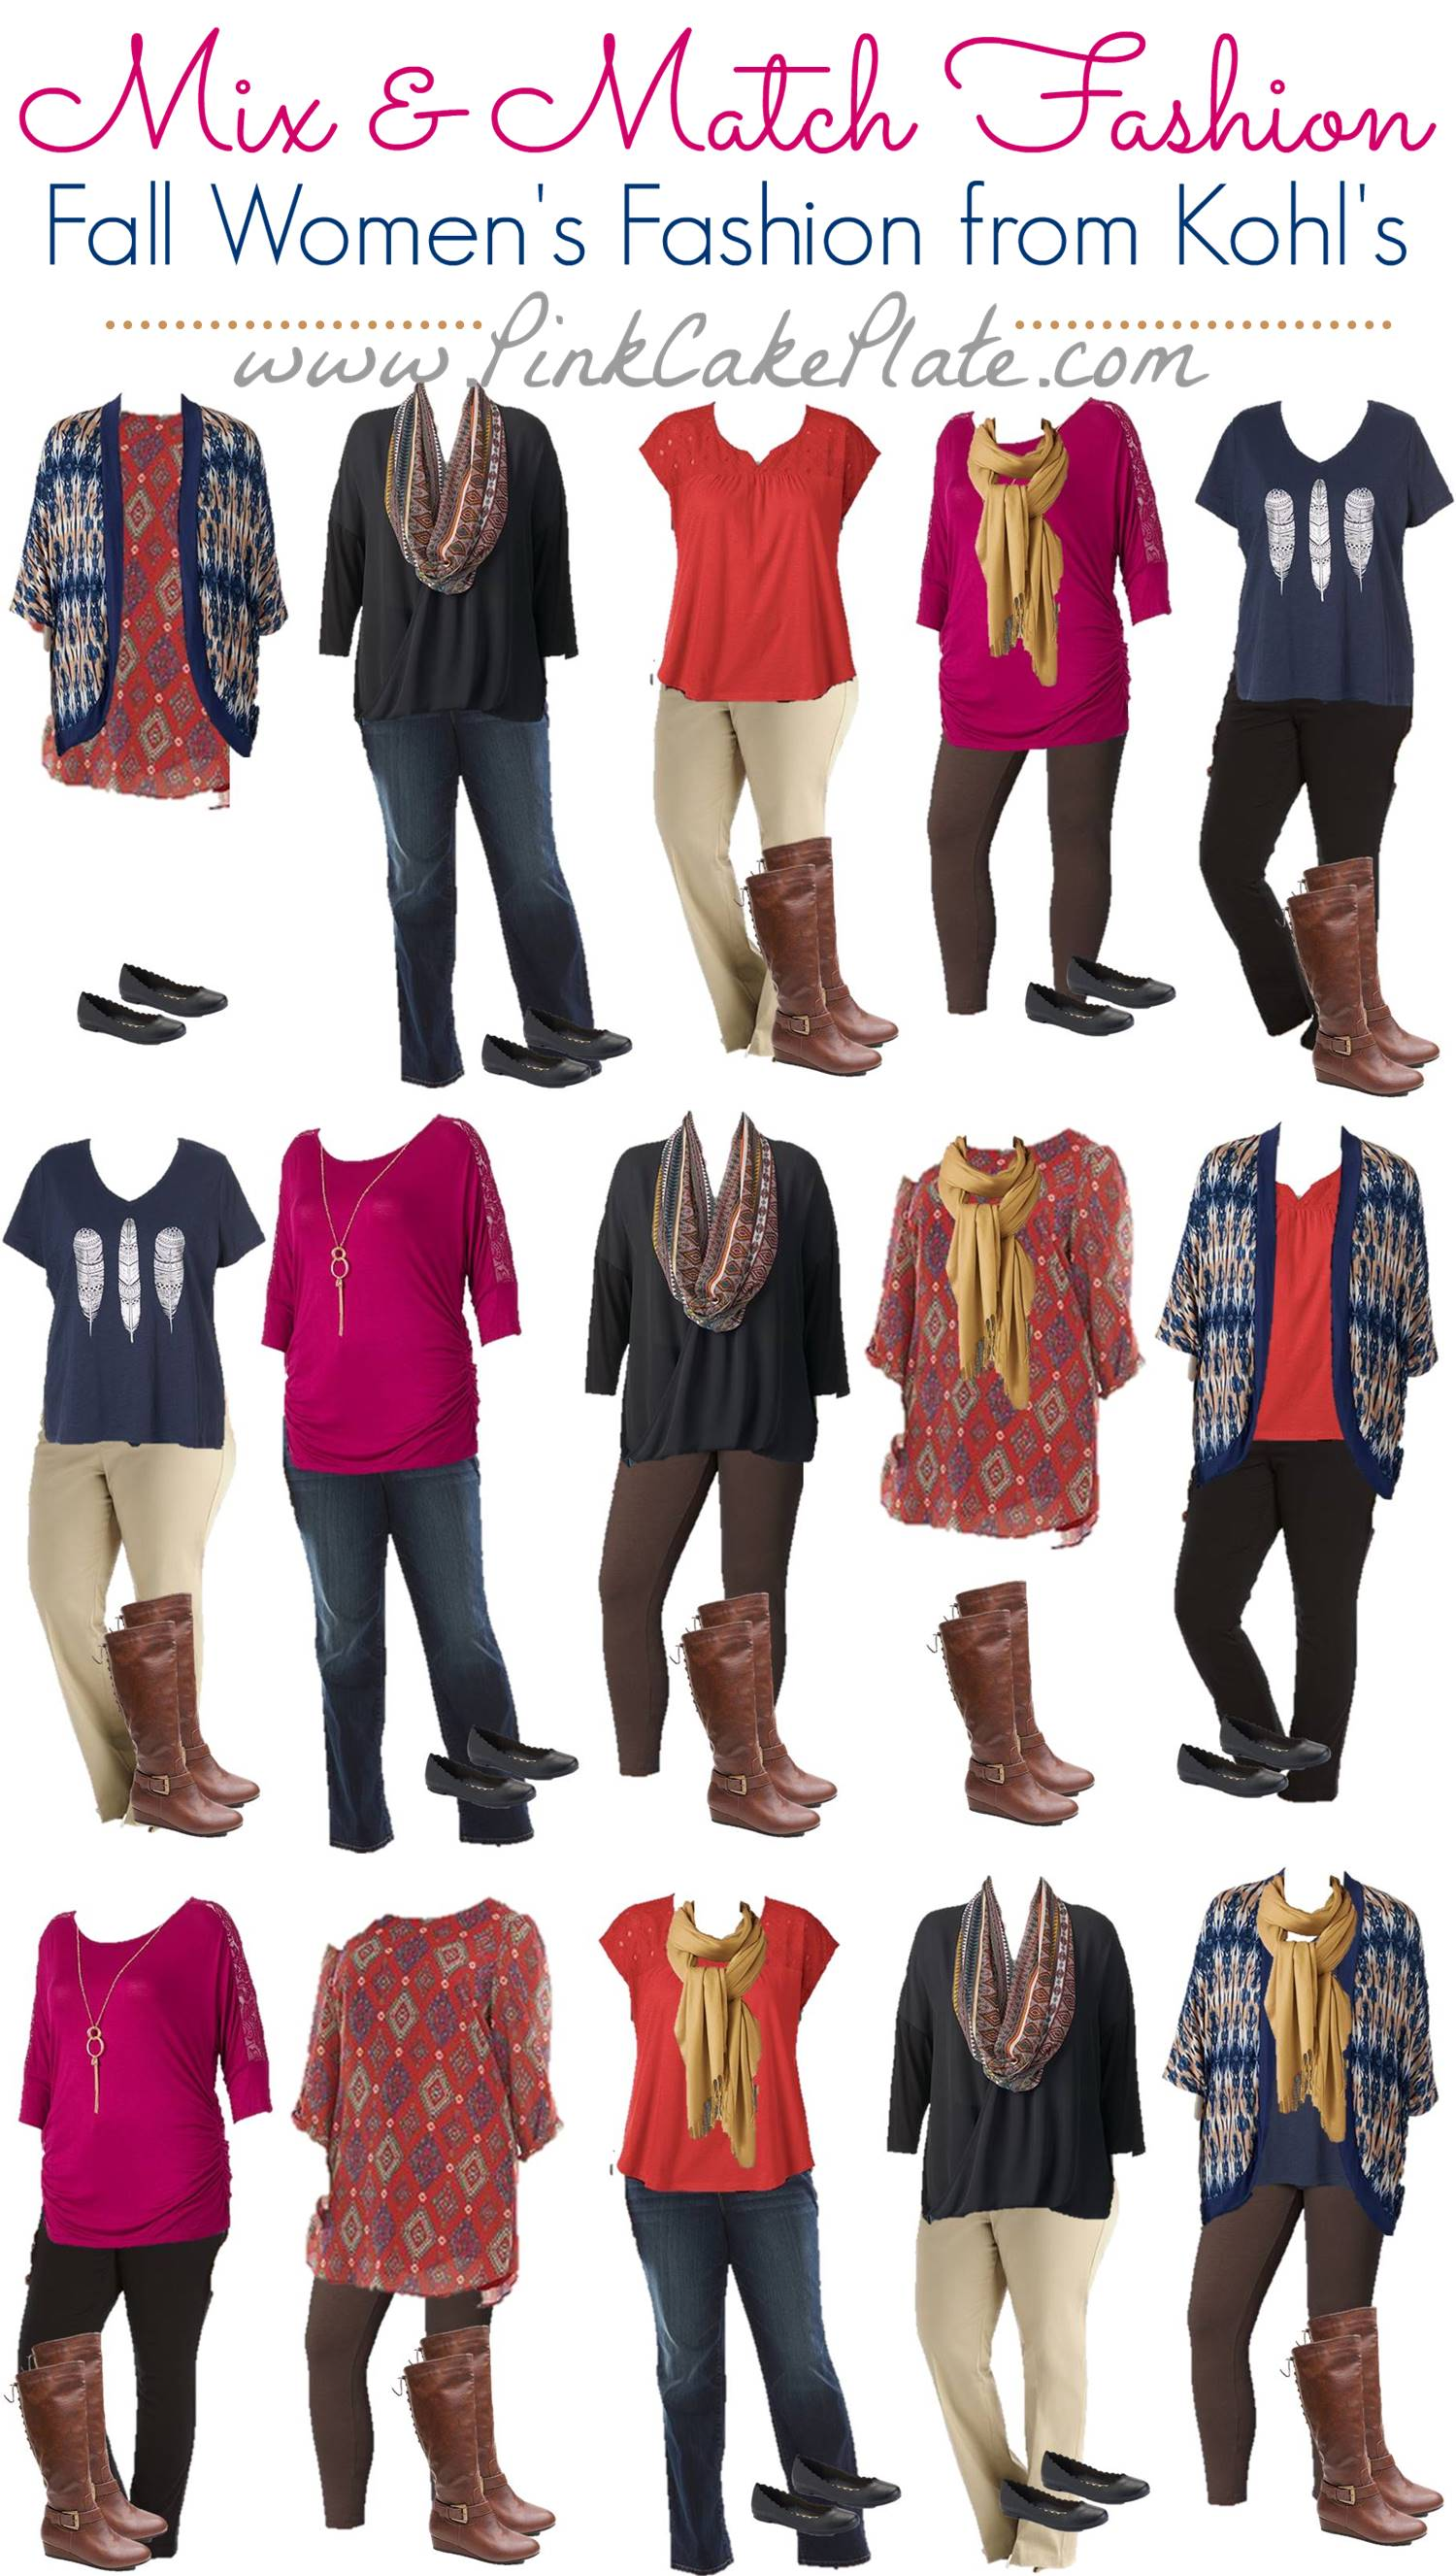 2015 Fall Mix Match Plus Size Fashion